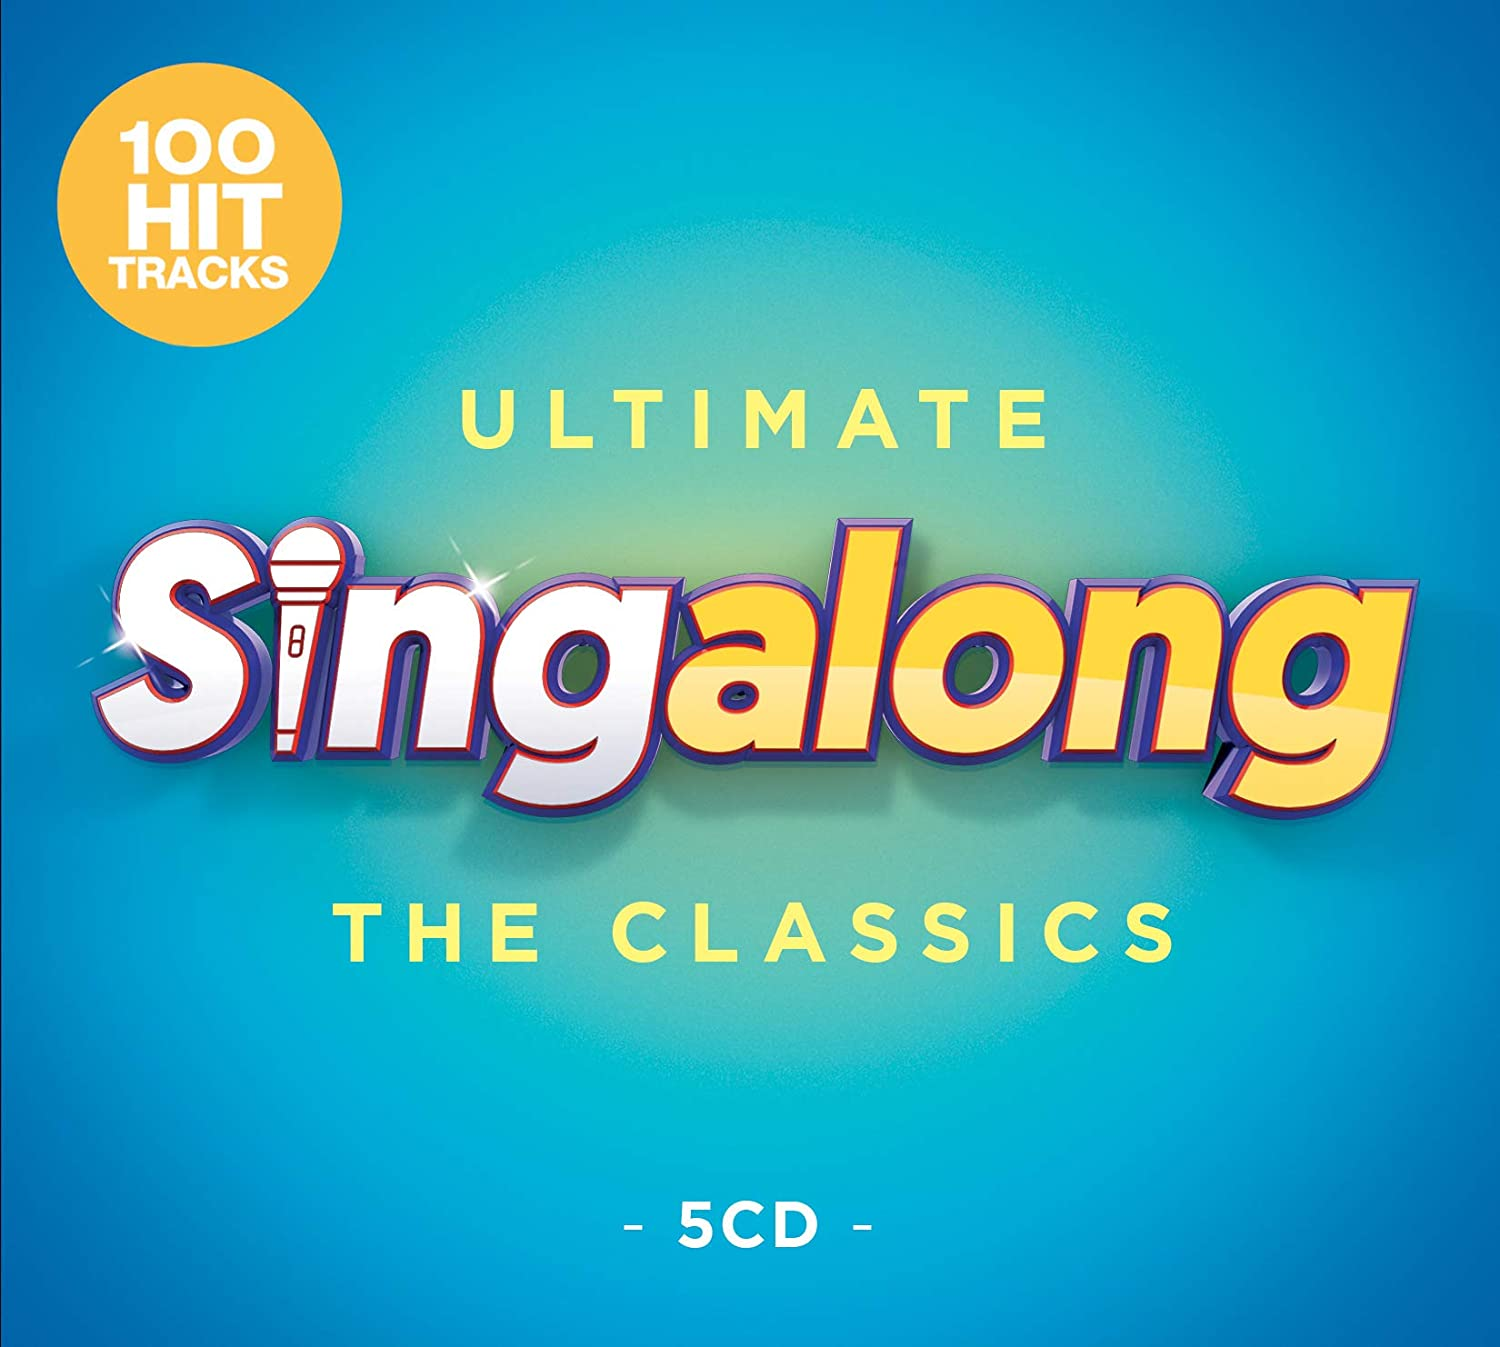 Ultimate Singalong - The Classics: Amazon co uk: Music